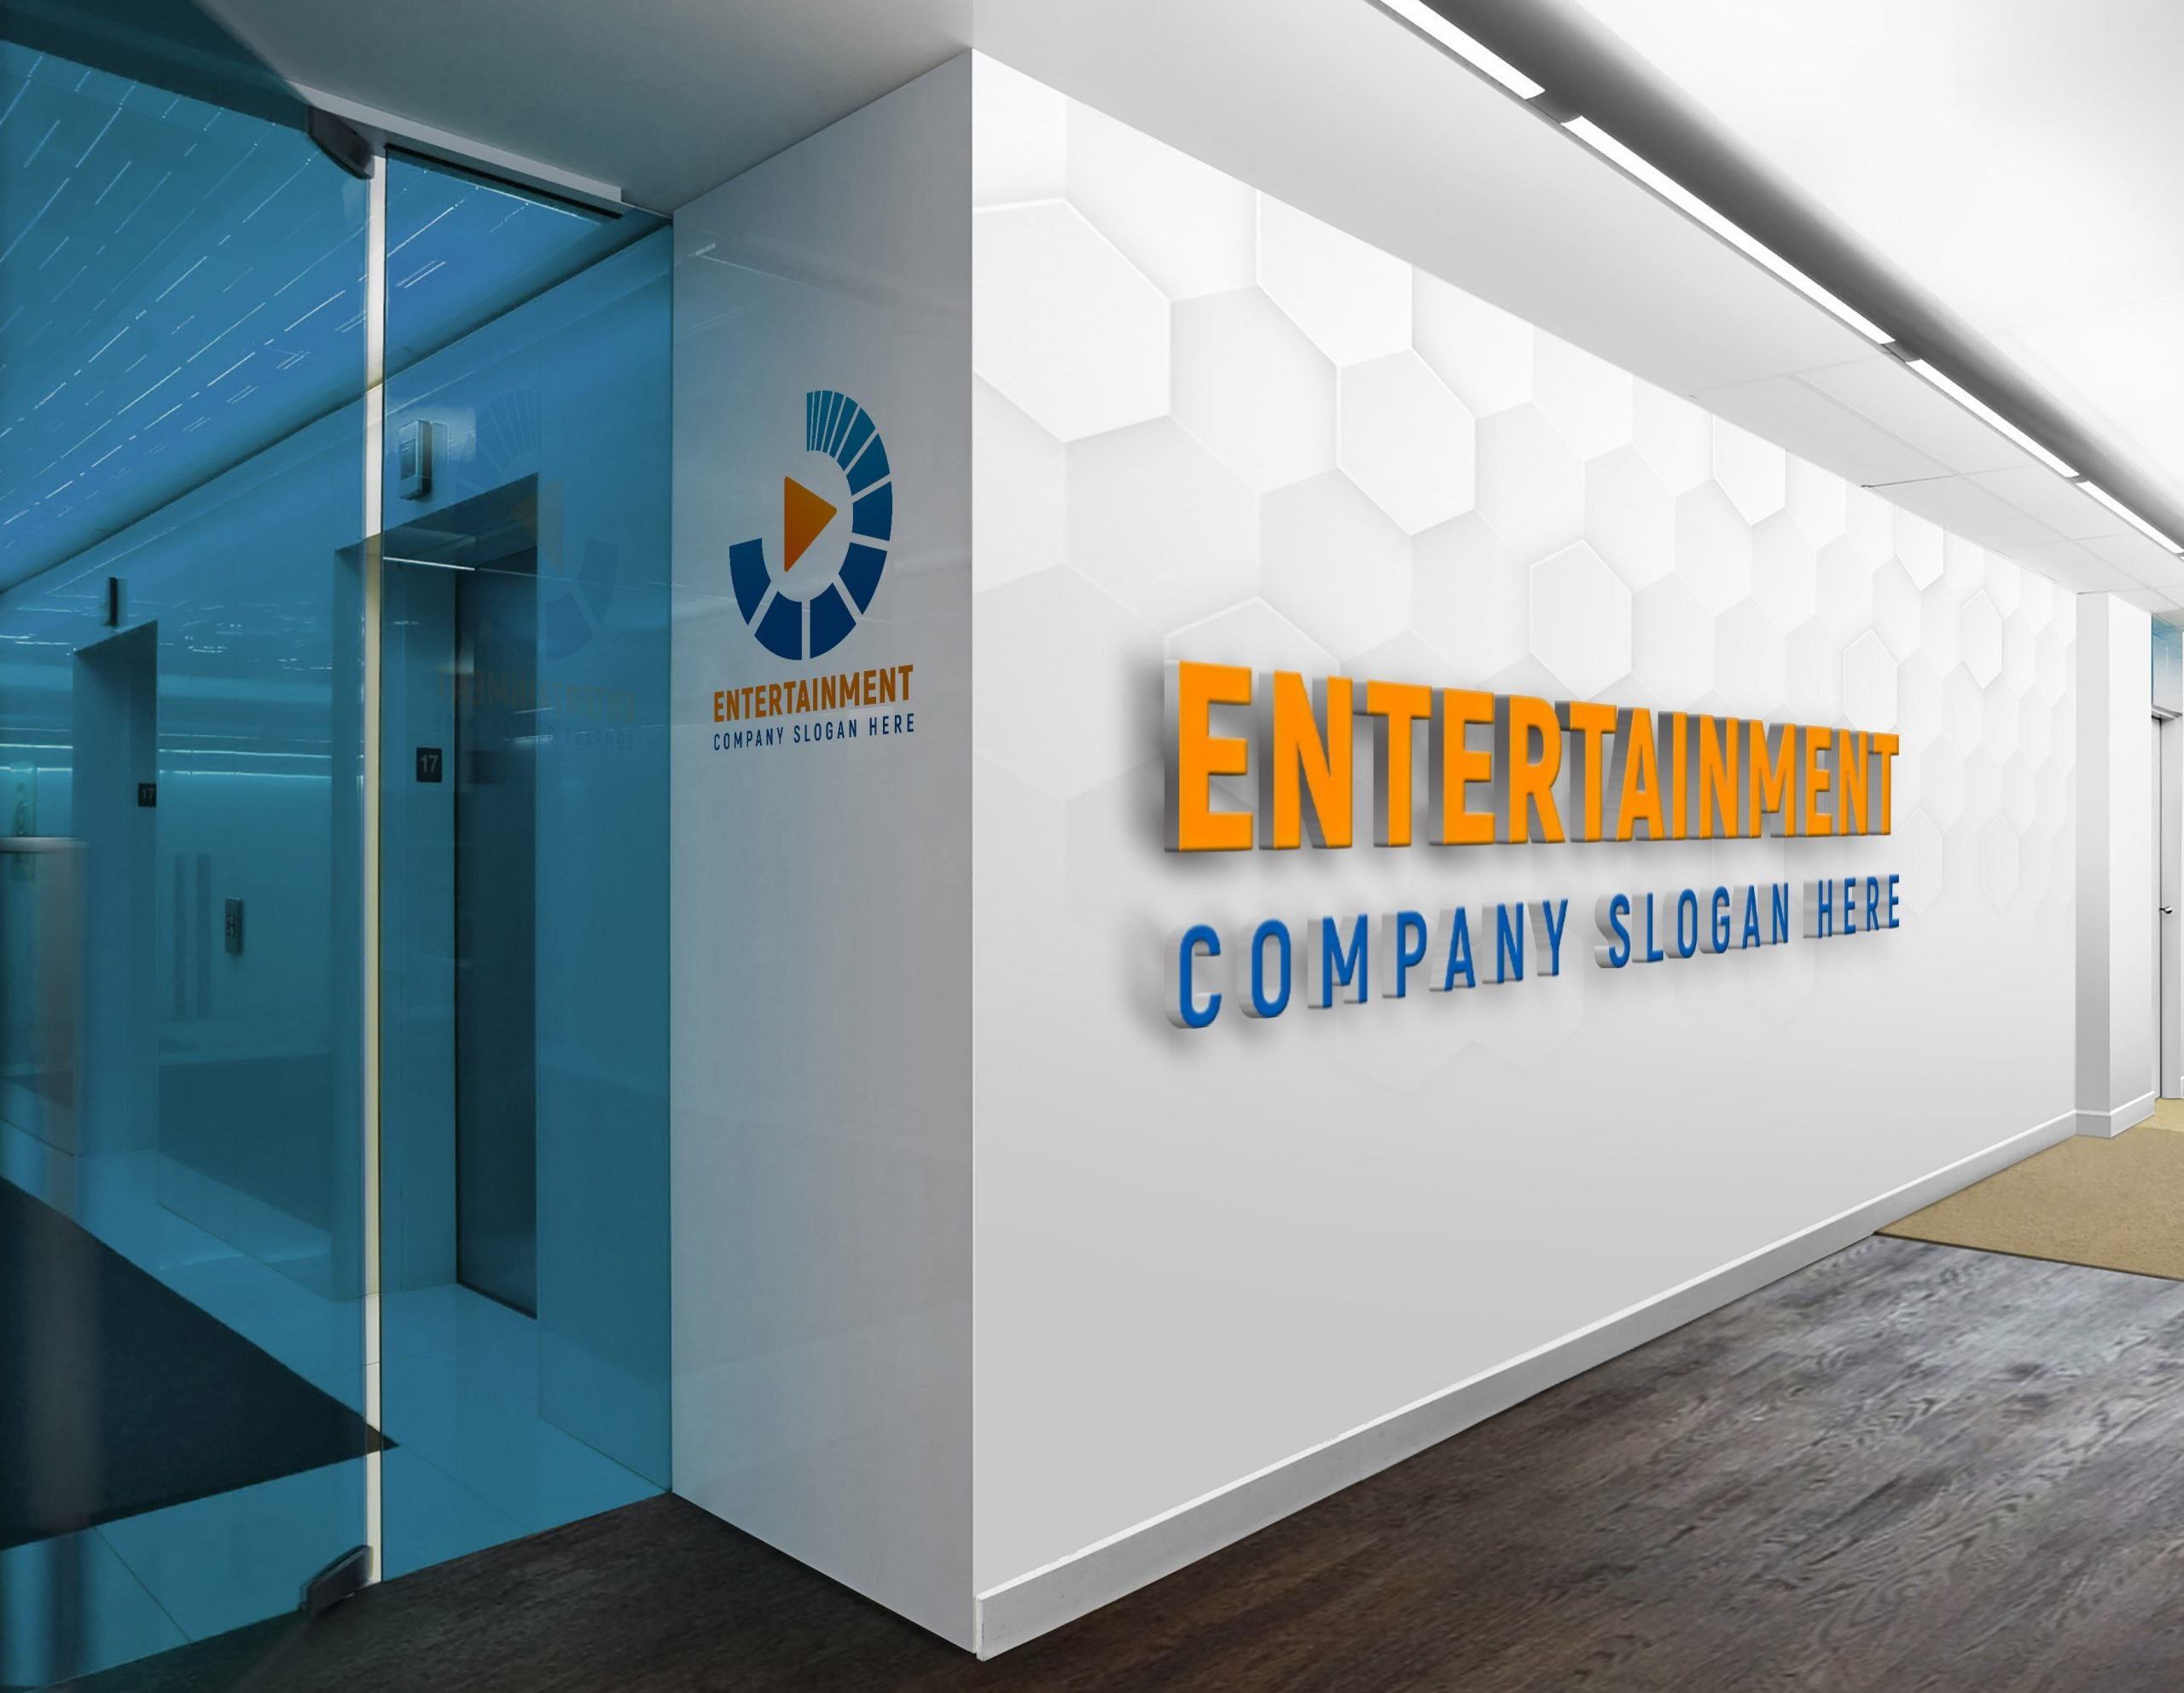 Media entertainment logo free photoshop design on wall